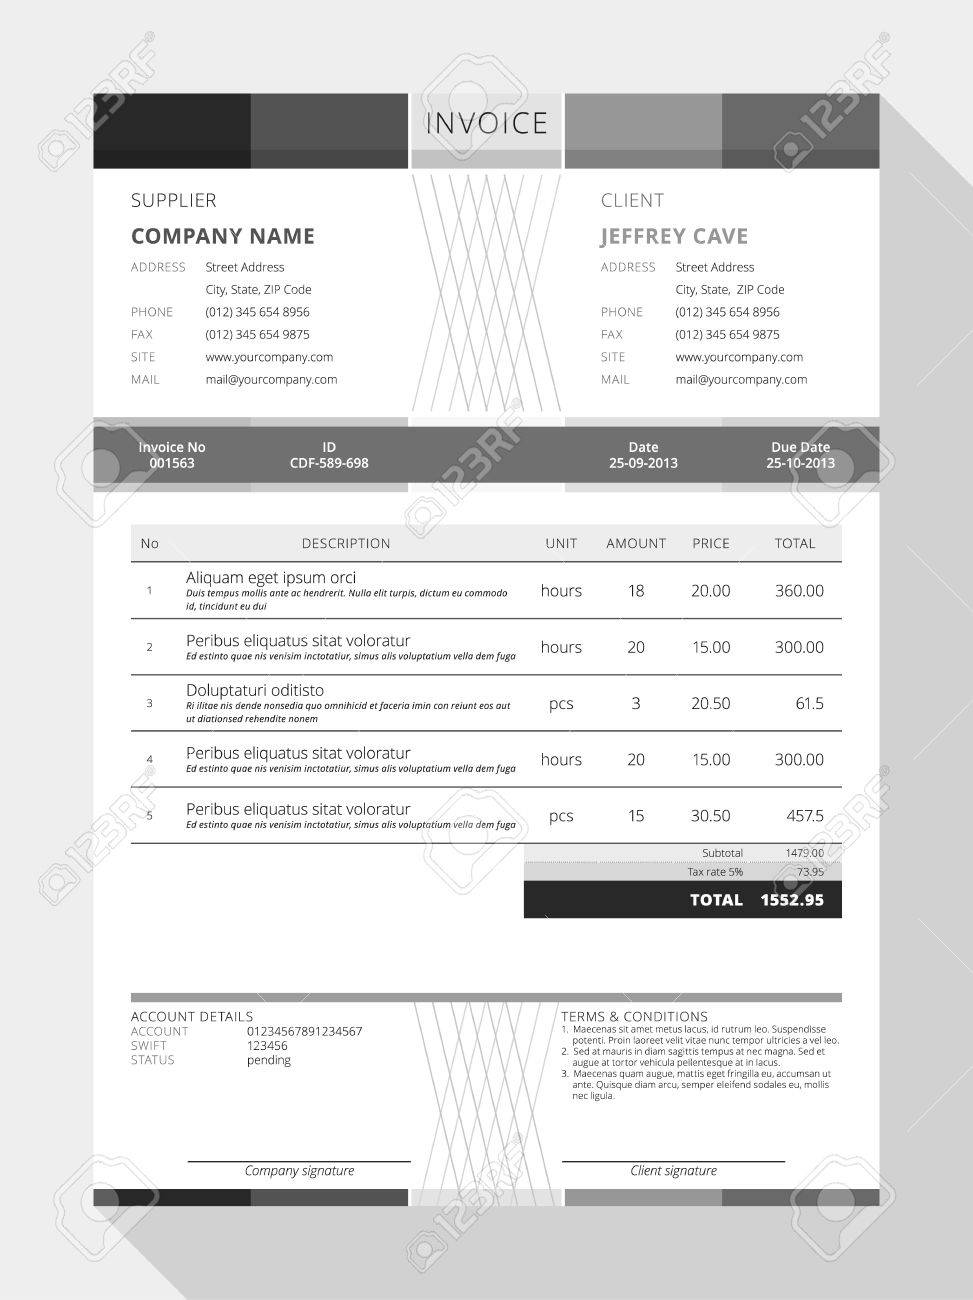 Maidofhonortoastus  Outstanding Design An Invoice  Professional Graphic Design Invoice  With Likable Vector Customizable Invoice Form Template Design Vector   Design An Invoice With Adorable Invoice With Gst Also Mazda Invoice Price In Addition Sole Trader Invoice Template And How To Invoice As A Sole Trader As Well As Invoice And Proforma Invoice Additionally Download Word Invoice Template From Happytomco With Maidofhonortoastus  Likable Design An Invoice  Professional Graphic Design Invoice  With Adorable Vector Customizable Invoice Form Template Design Vector   Design An Invoice And Outstanding Invoice With Gst Also Mazda Invoice Price In Addition Sole Trader Invoice Template From Happytomco